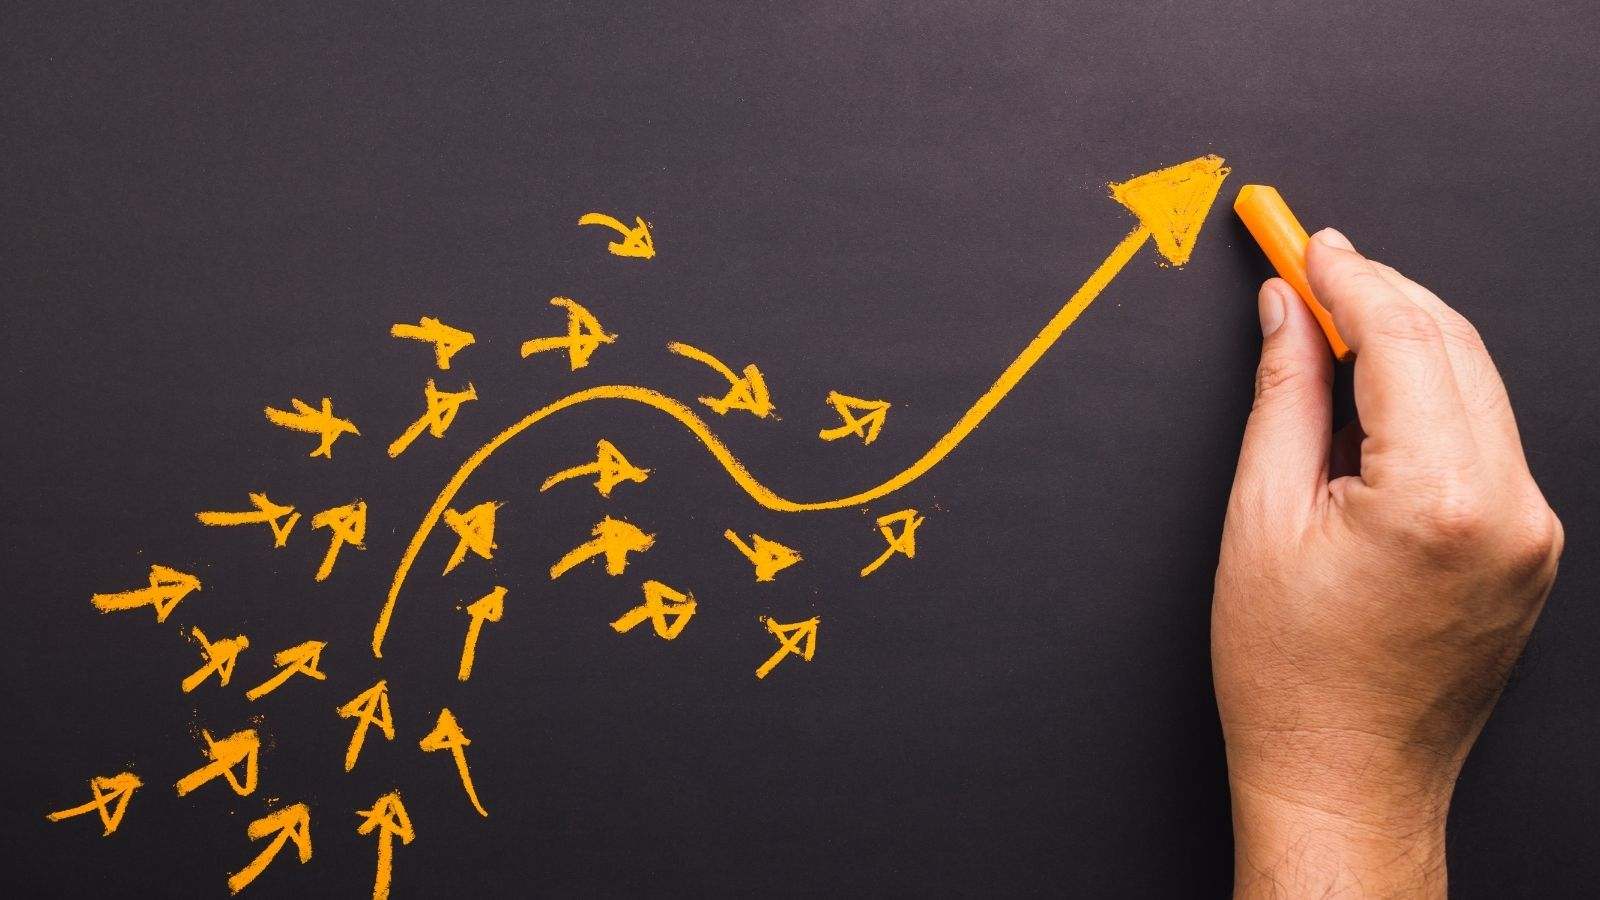 5 Lead Magnet Ideas for Every Stage of The Buyer's Journey